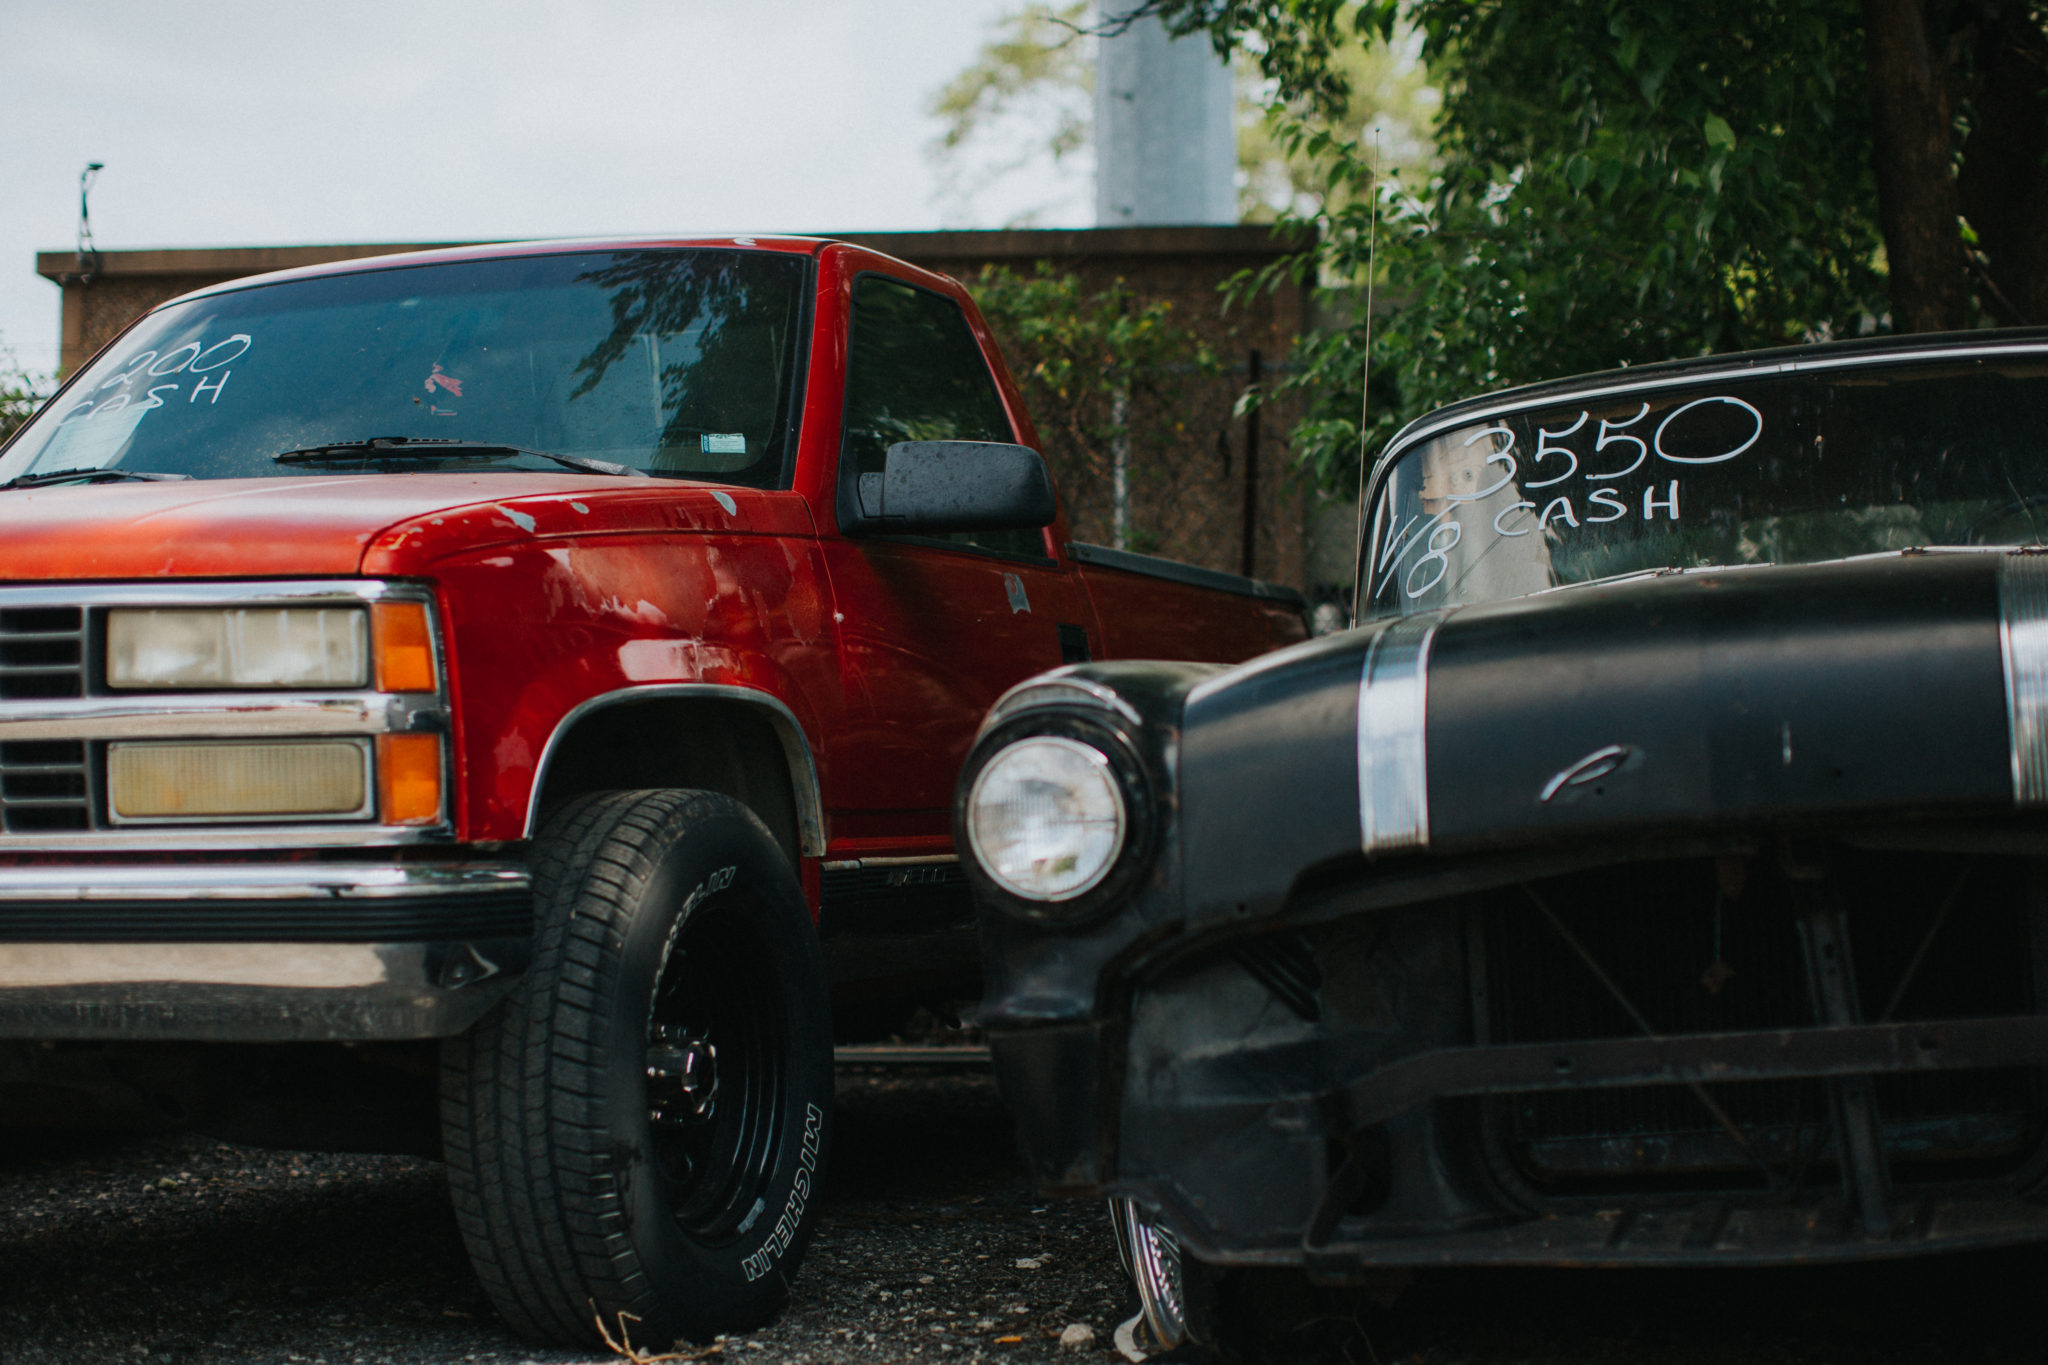 Find out what's new at Junk Cars For Cash